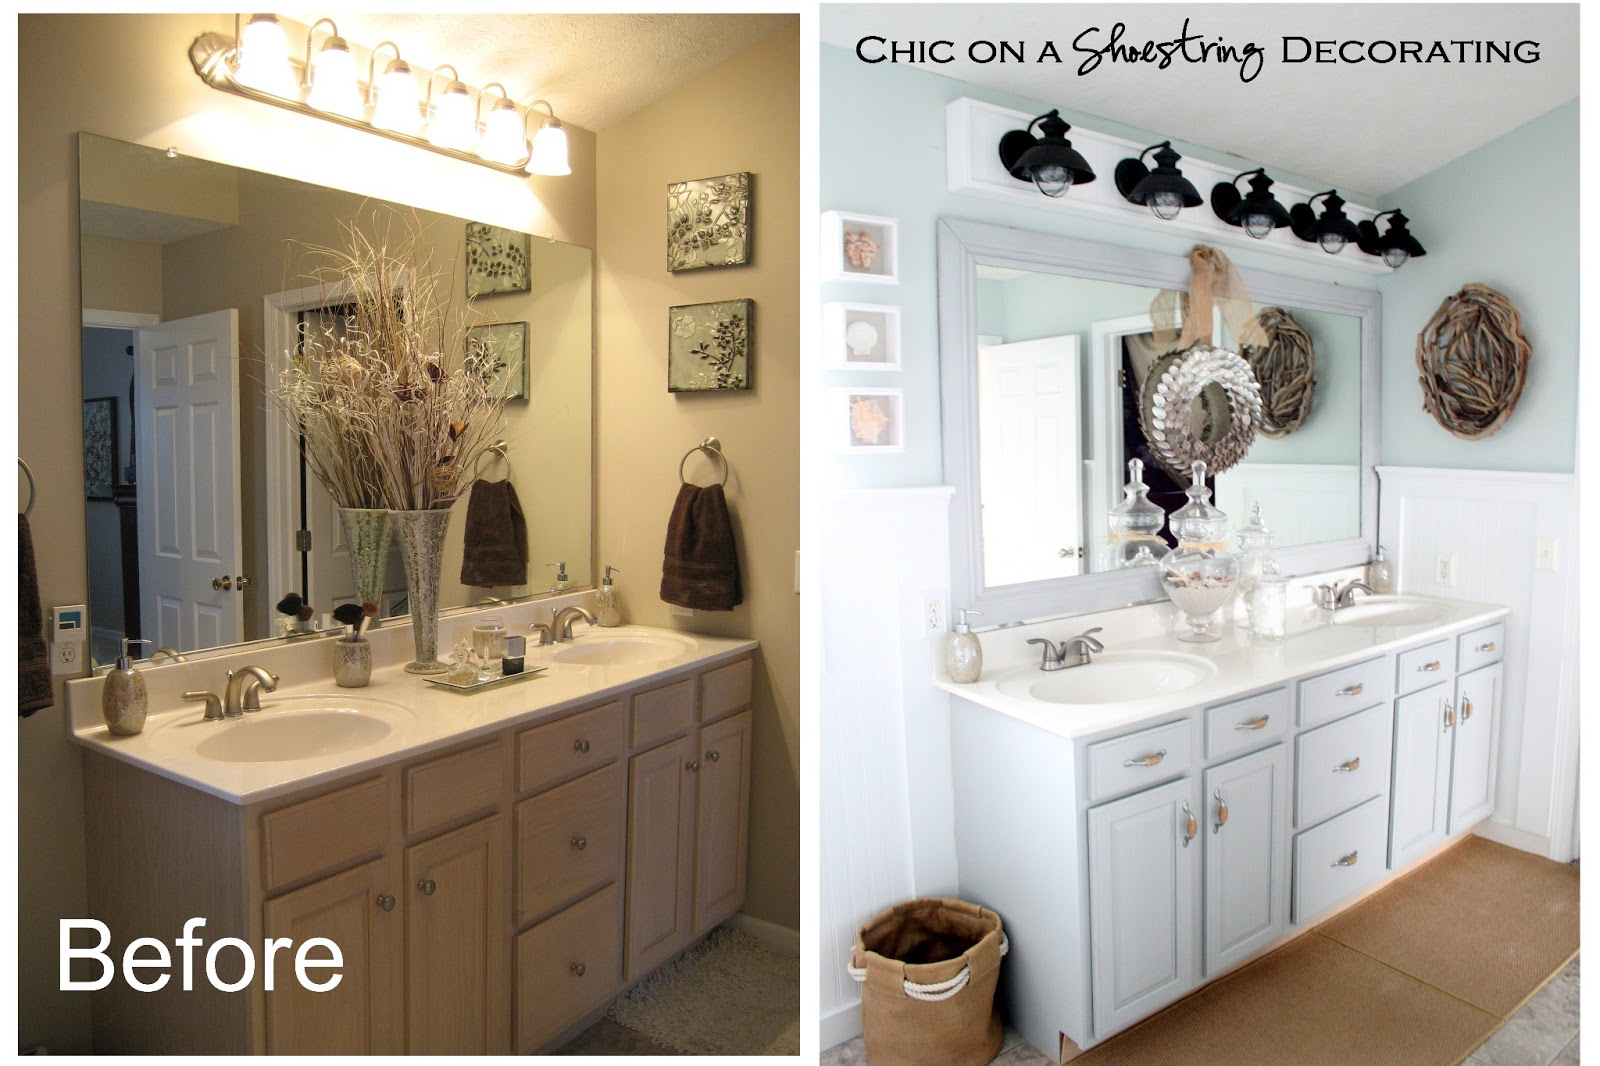 beach coastal bathroom by Chic on a Shoestring Decorating  Beachy Bathroom Reveal